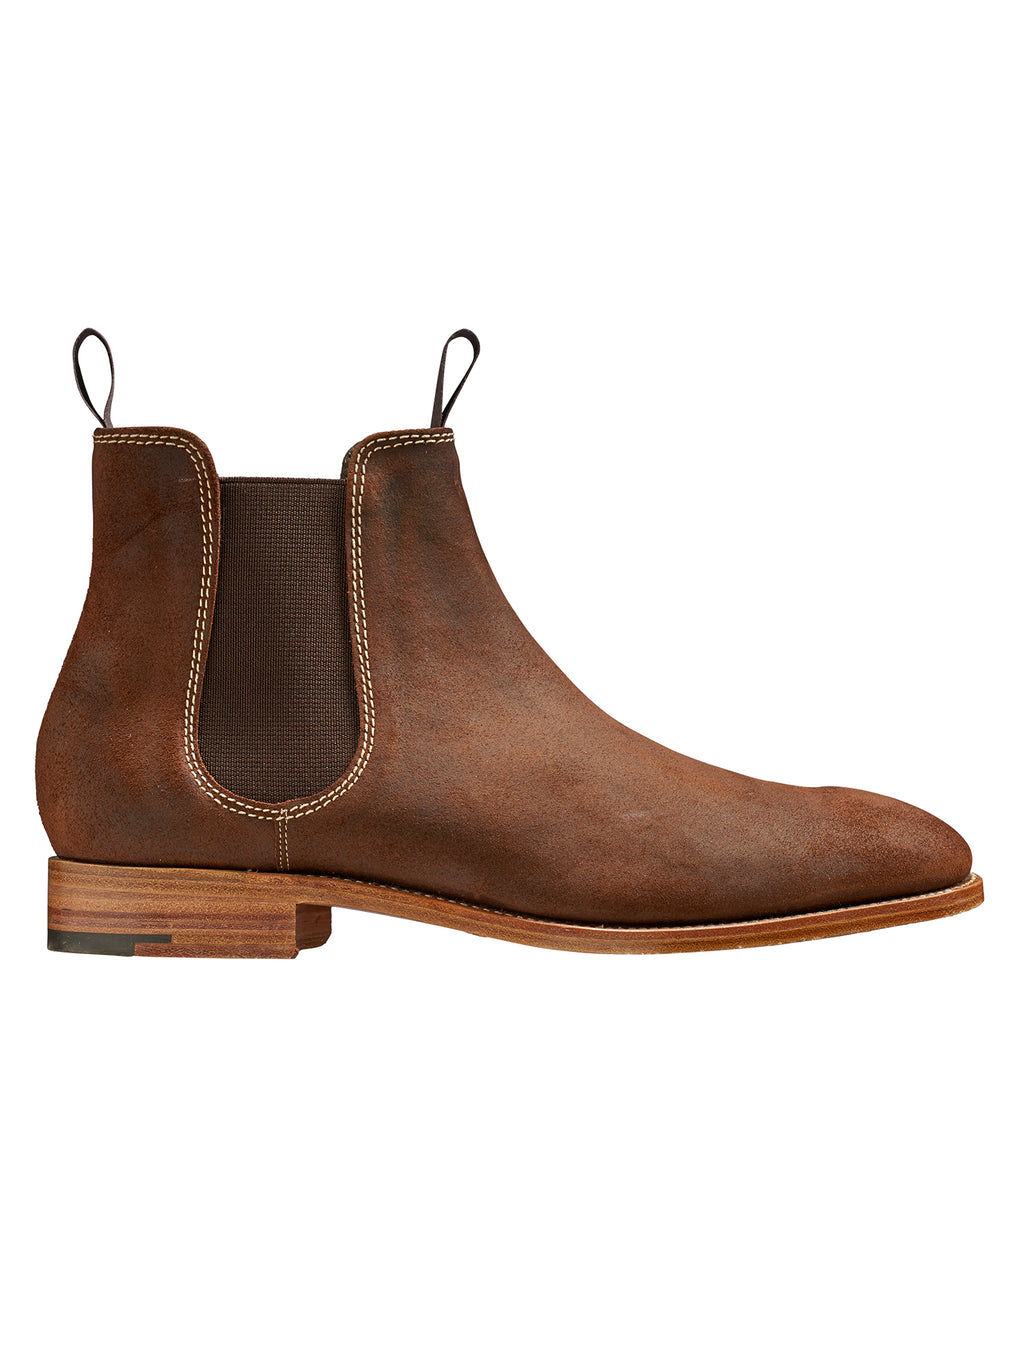 barker shoes mansfield chelsea boot